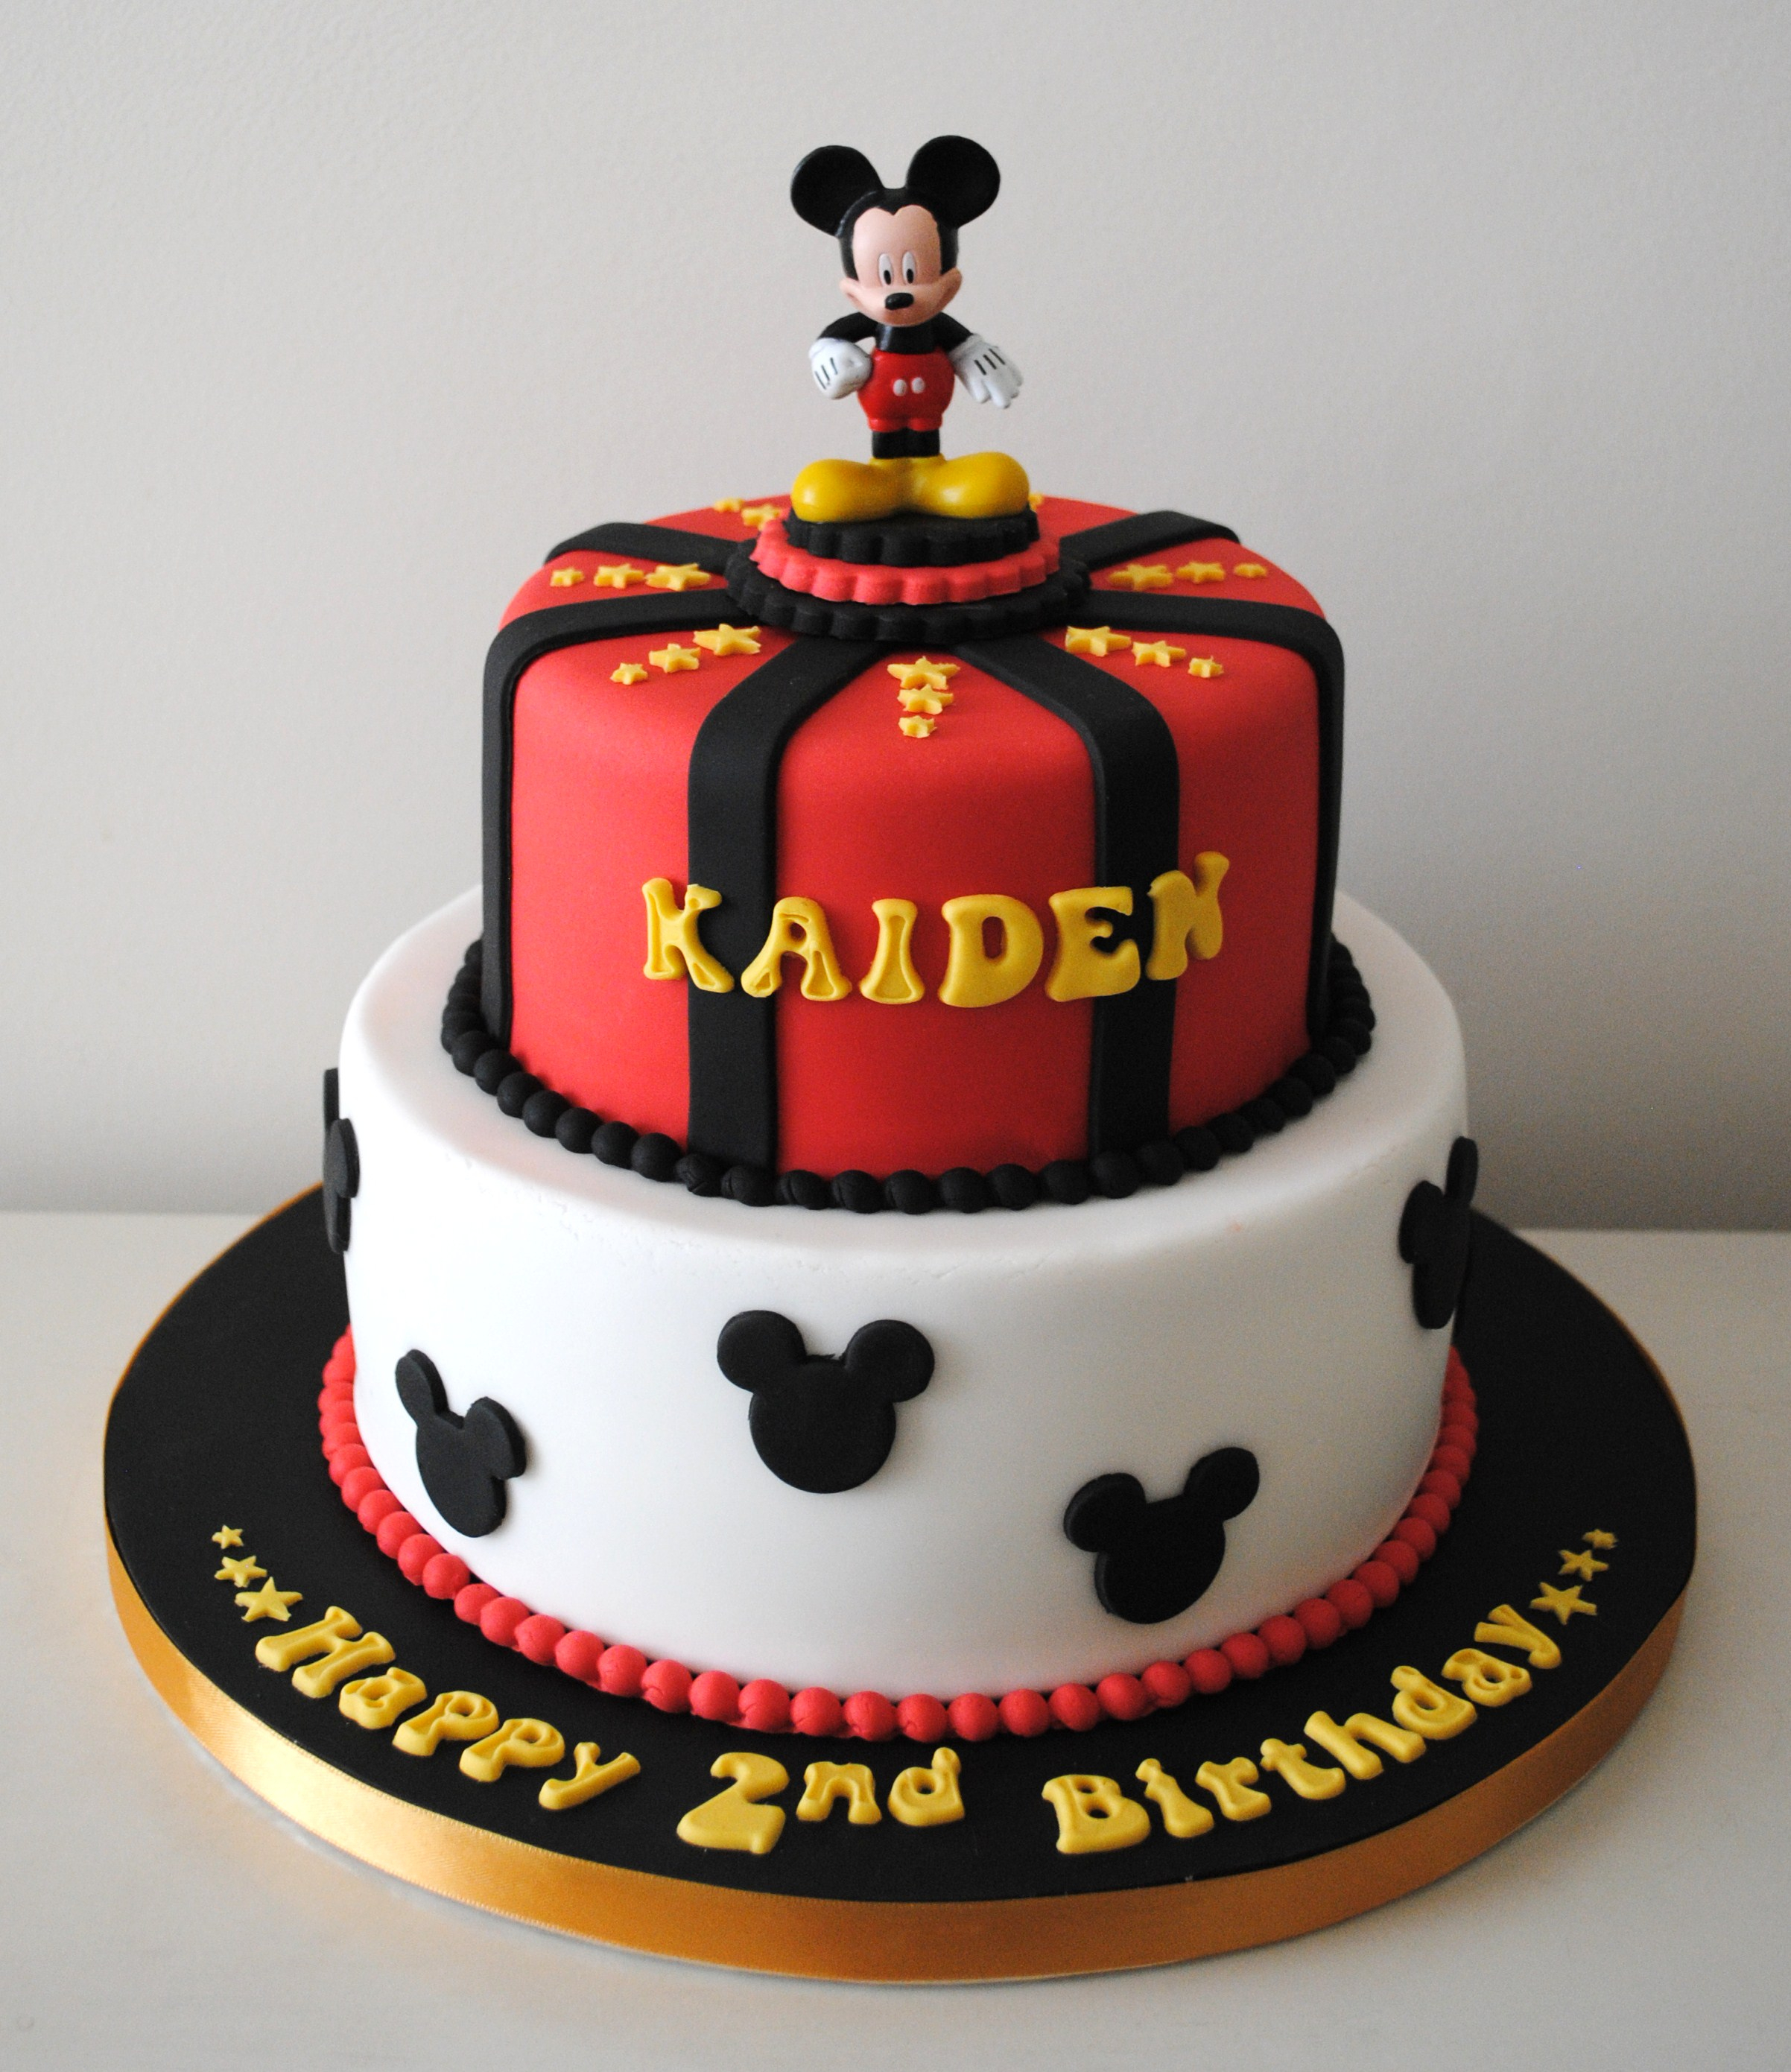 Mickey Mouse Birthday Cakes Miss Cupcakes Blog Archive Mickey Mouse Birthday Cake